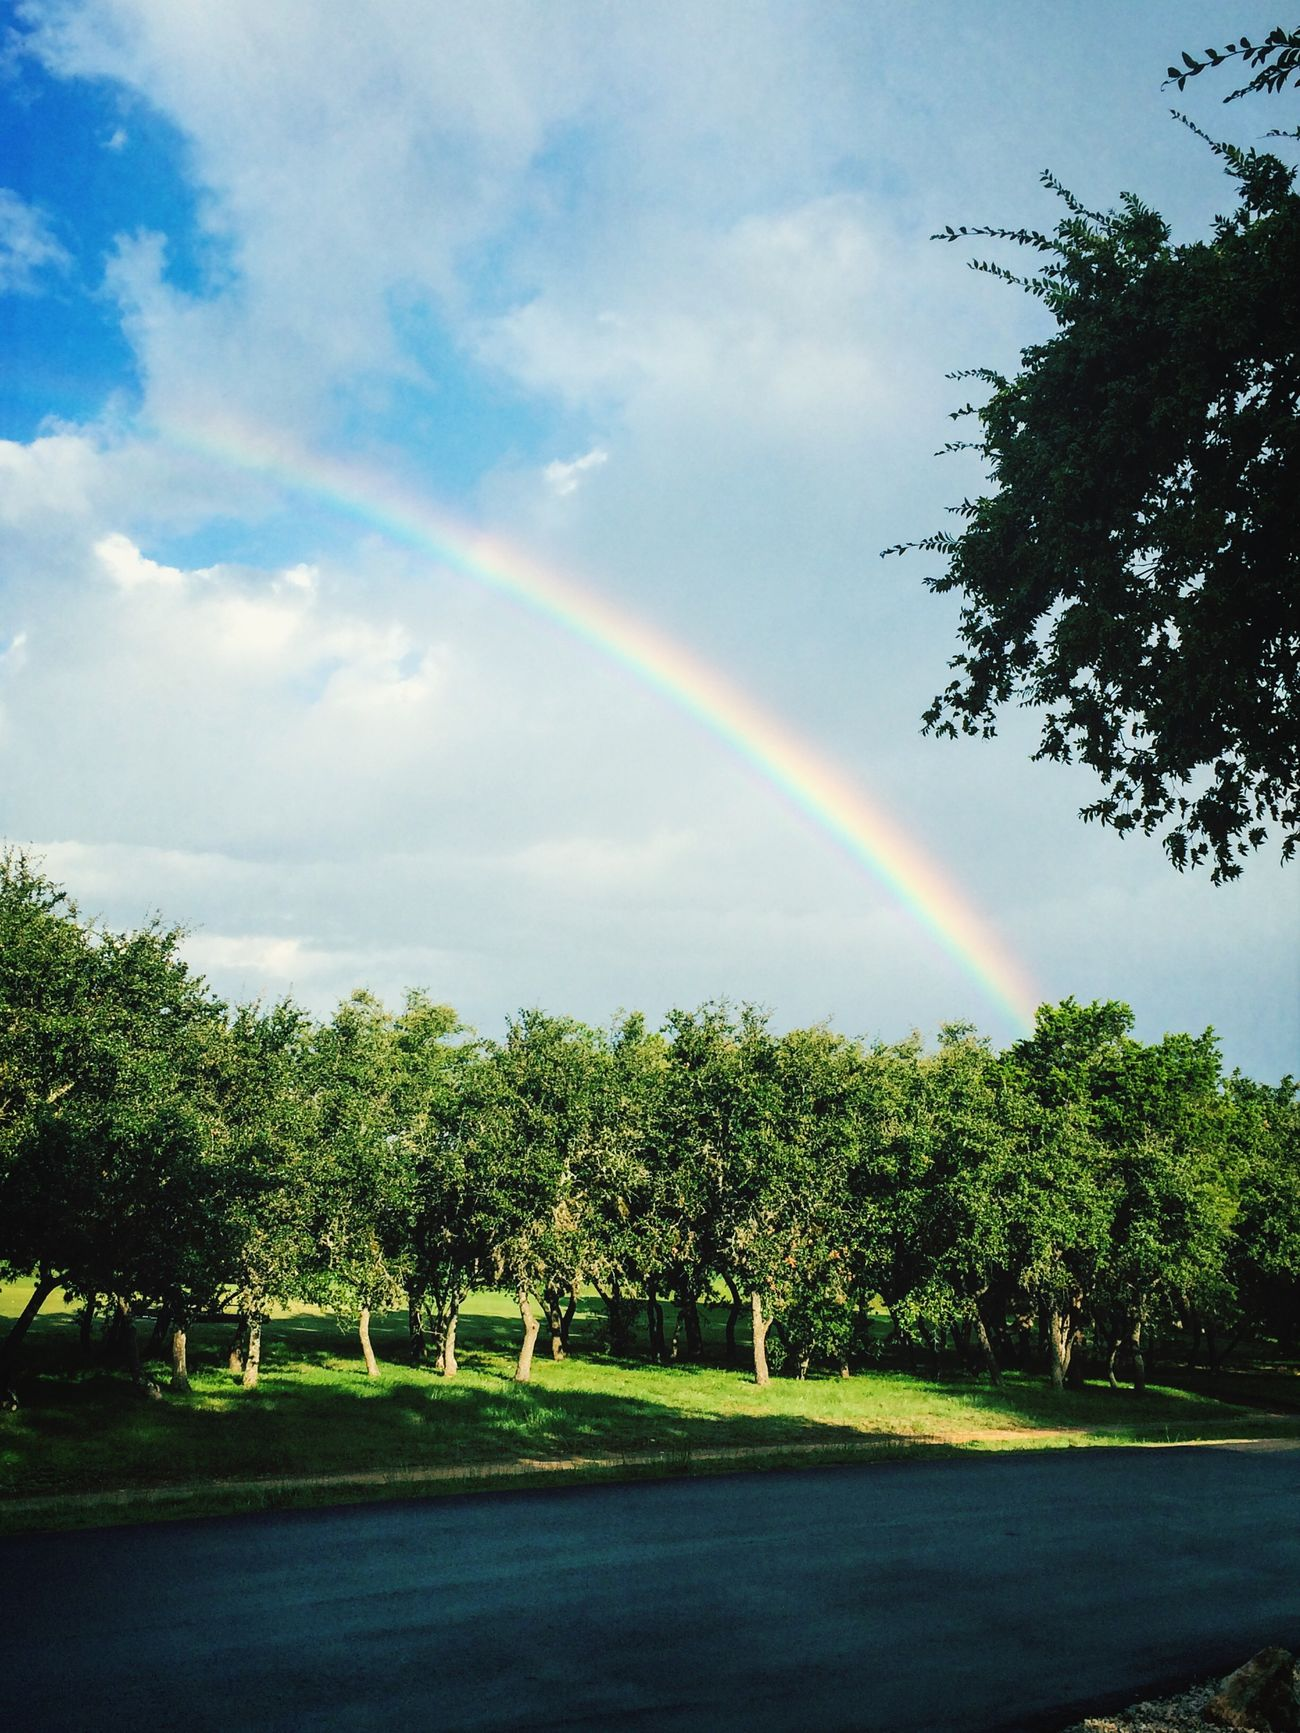 I spotted a beautful rainbow this morning Rainbow Beautful Bright Check This Out